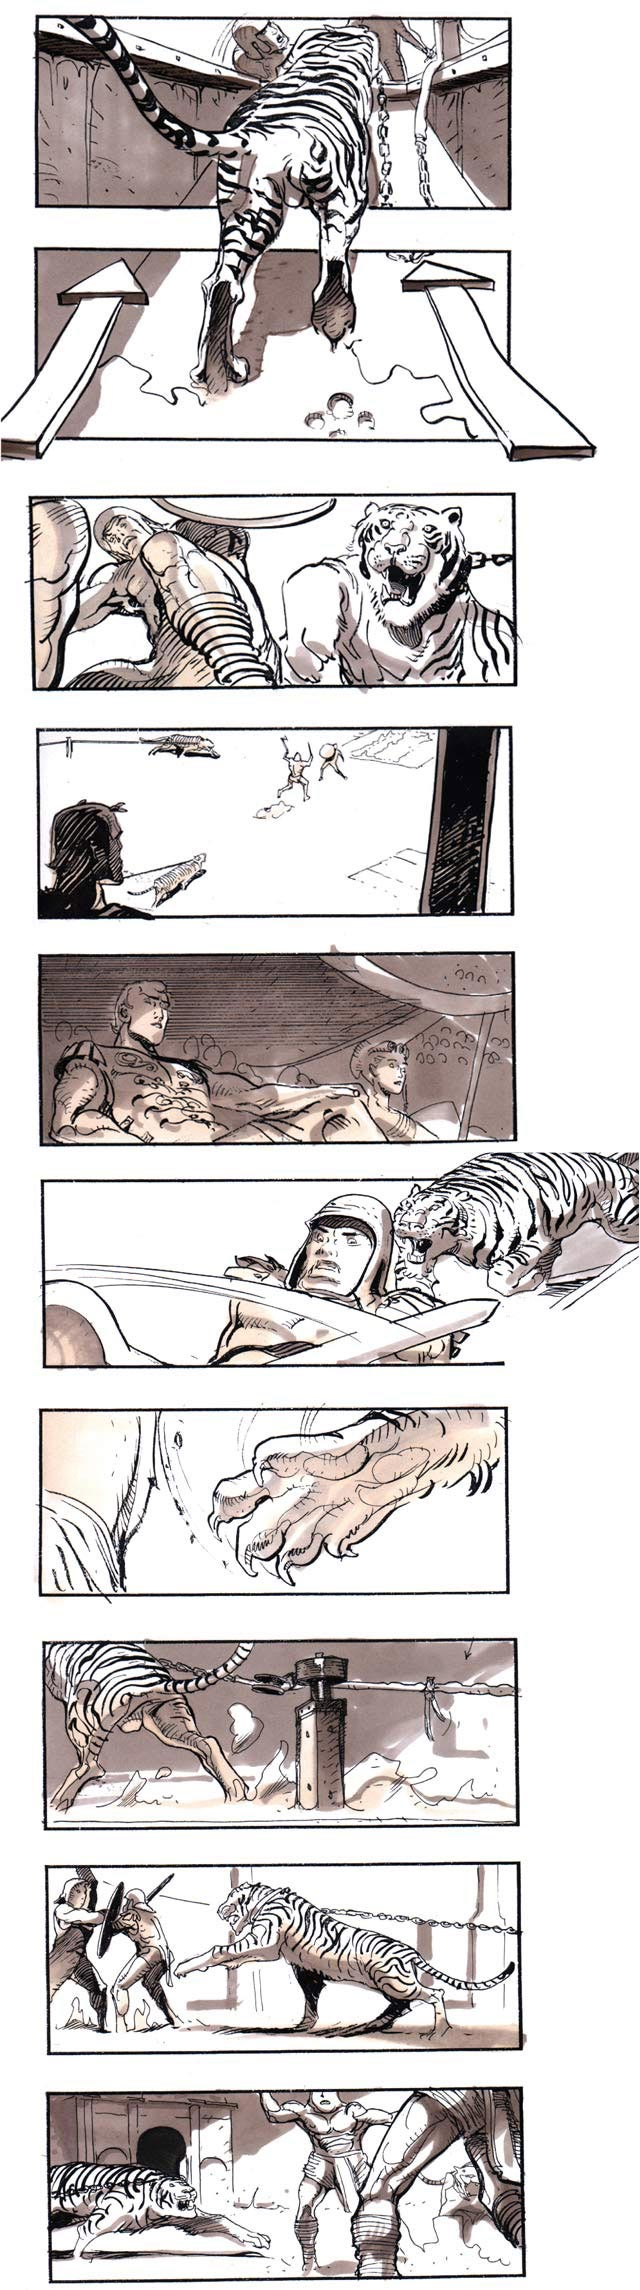 gladiator-storyboard-by-Sylvain-Despretz